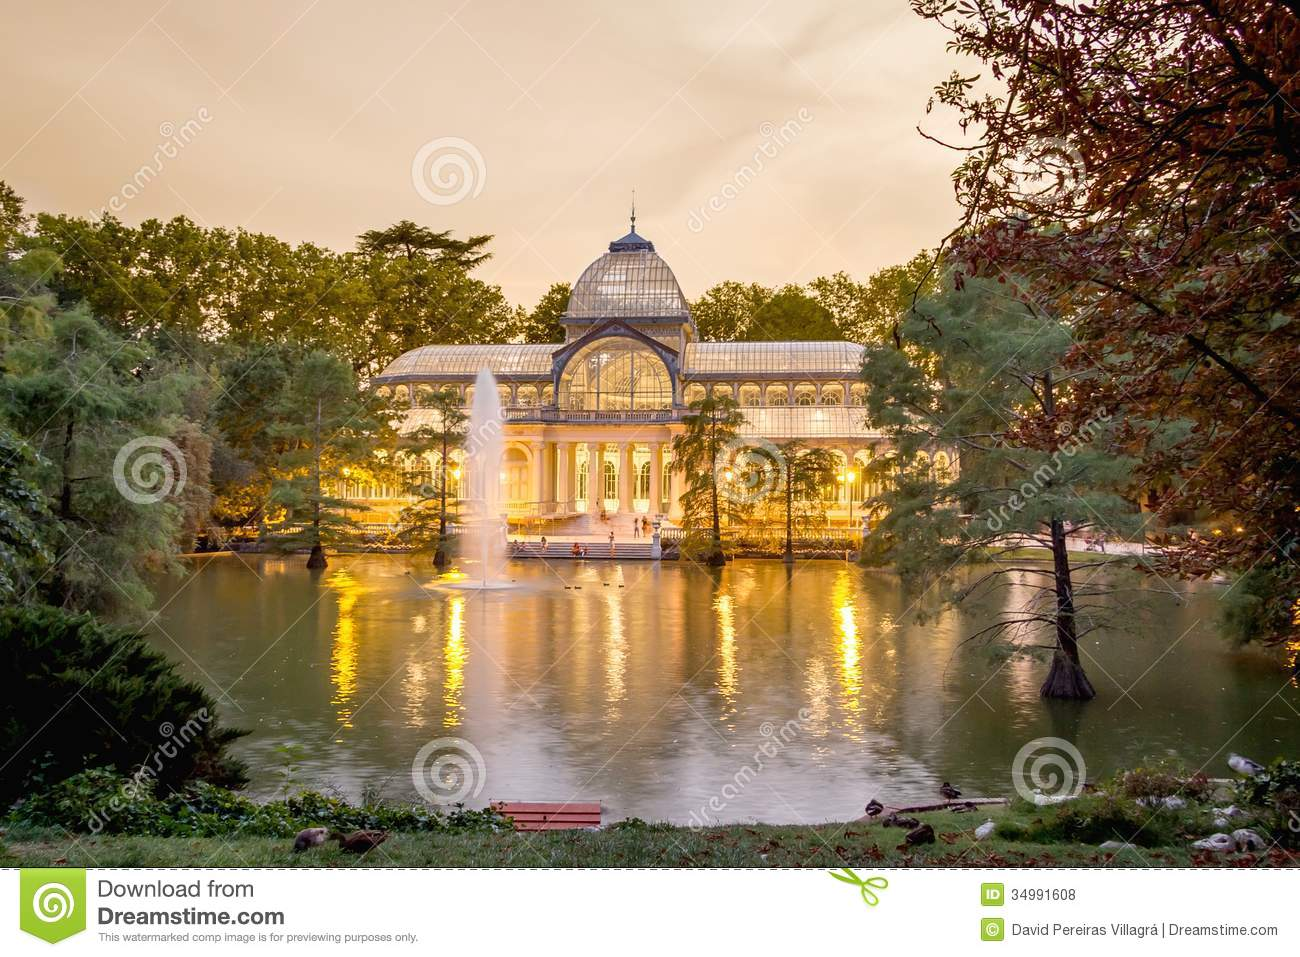 Crystal Palace In Buen Retiro Park, Madrid Royalty Free Stock Photos ...